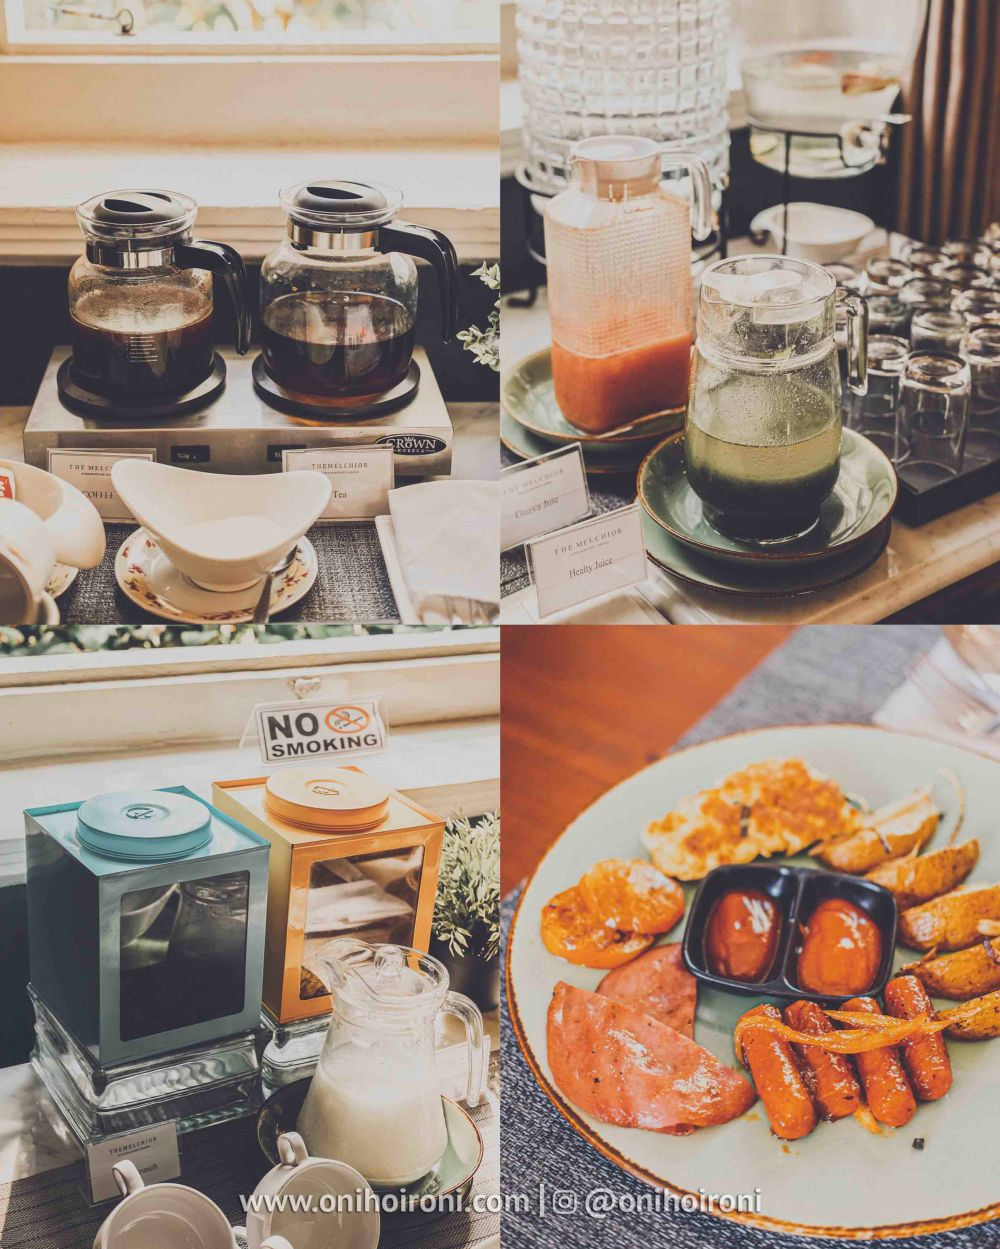 2 Review breakfast The Melchior Bogor by Baio oni hoironi